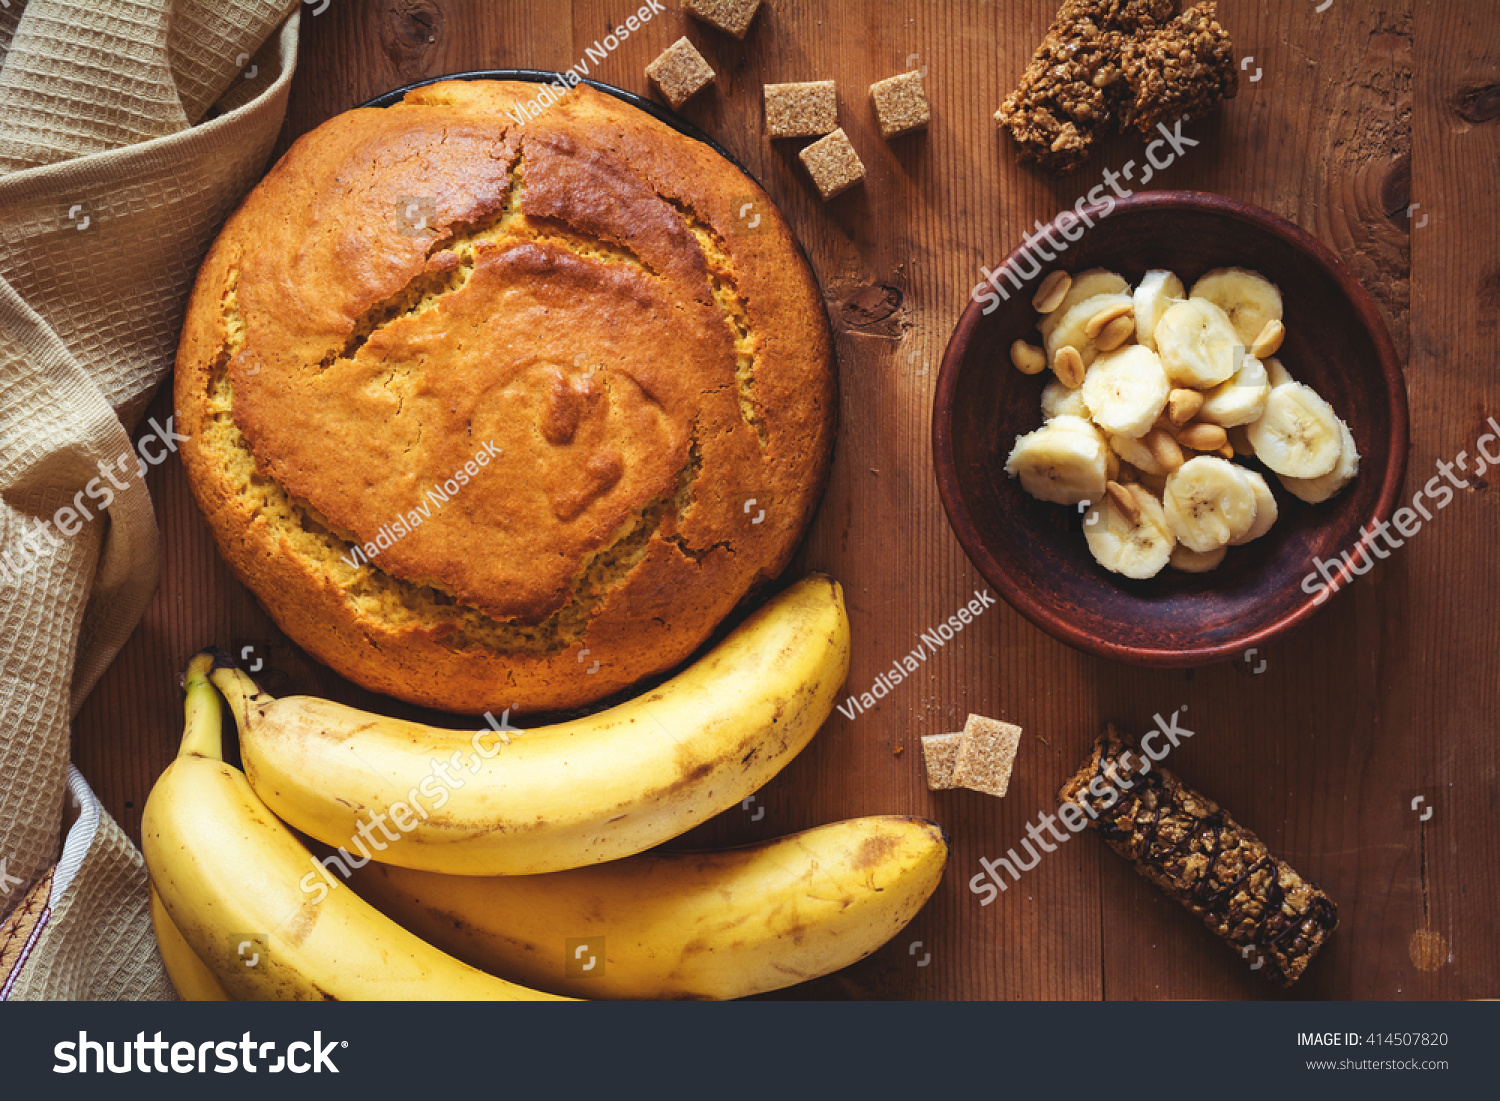 Round Loaf Freshly Baked Banana Bread Stock Photo Edit Now 414507820